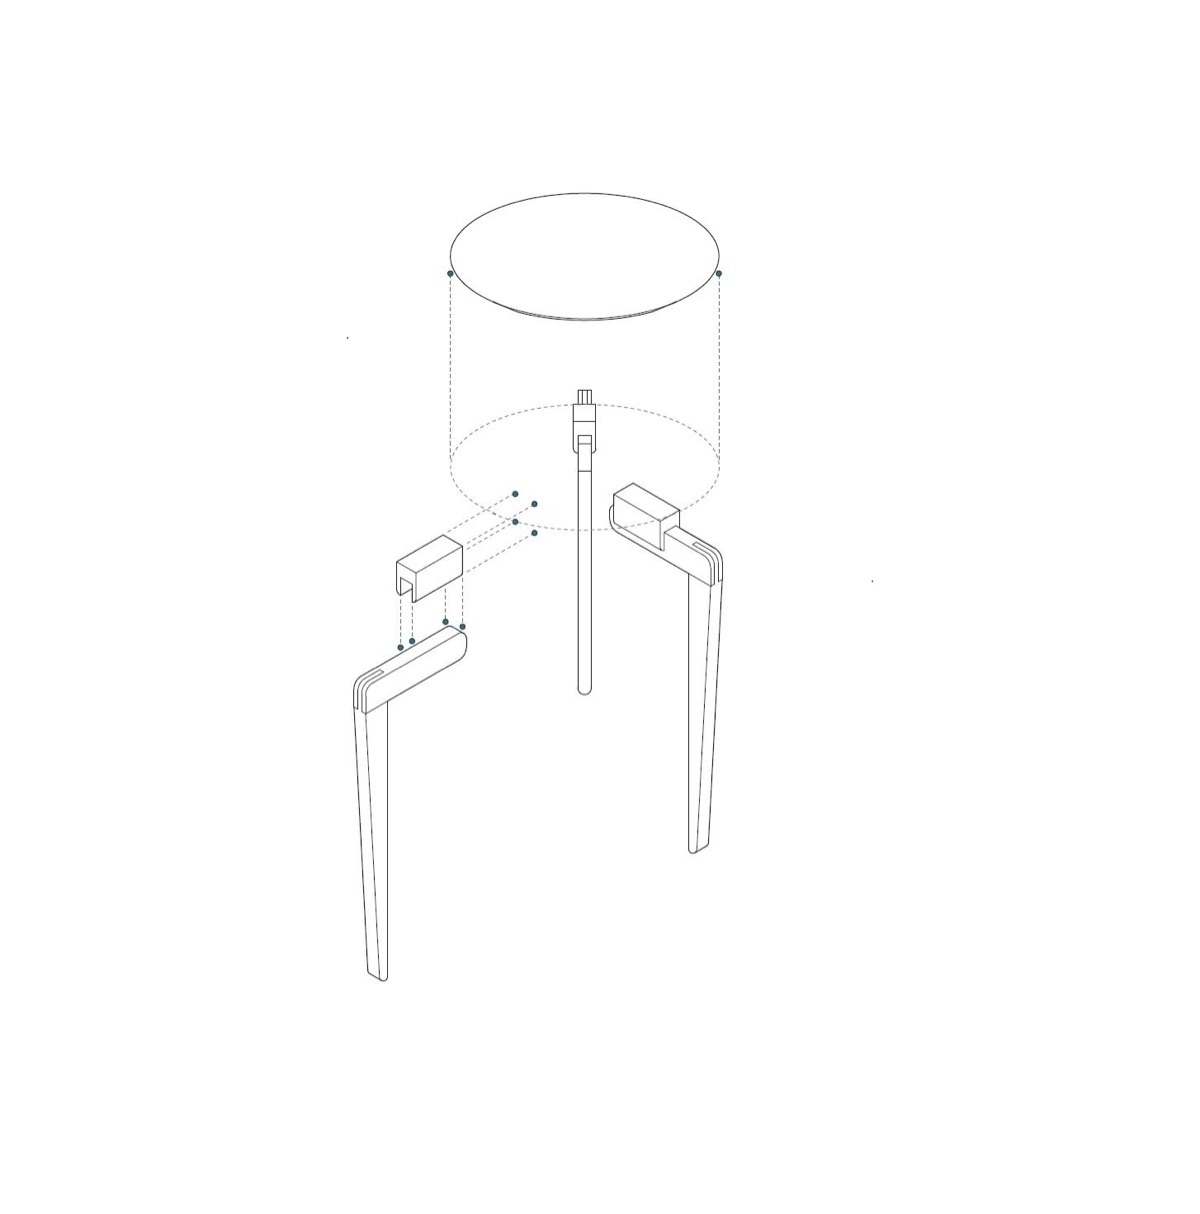 Technical drawing Heying Occasi - a-framedesign | ello